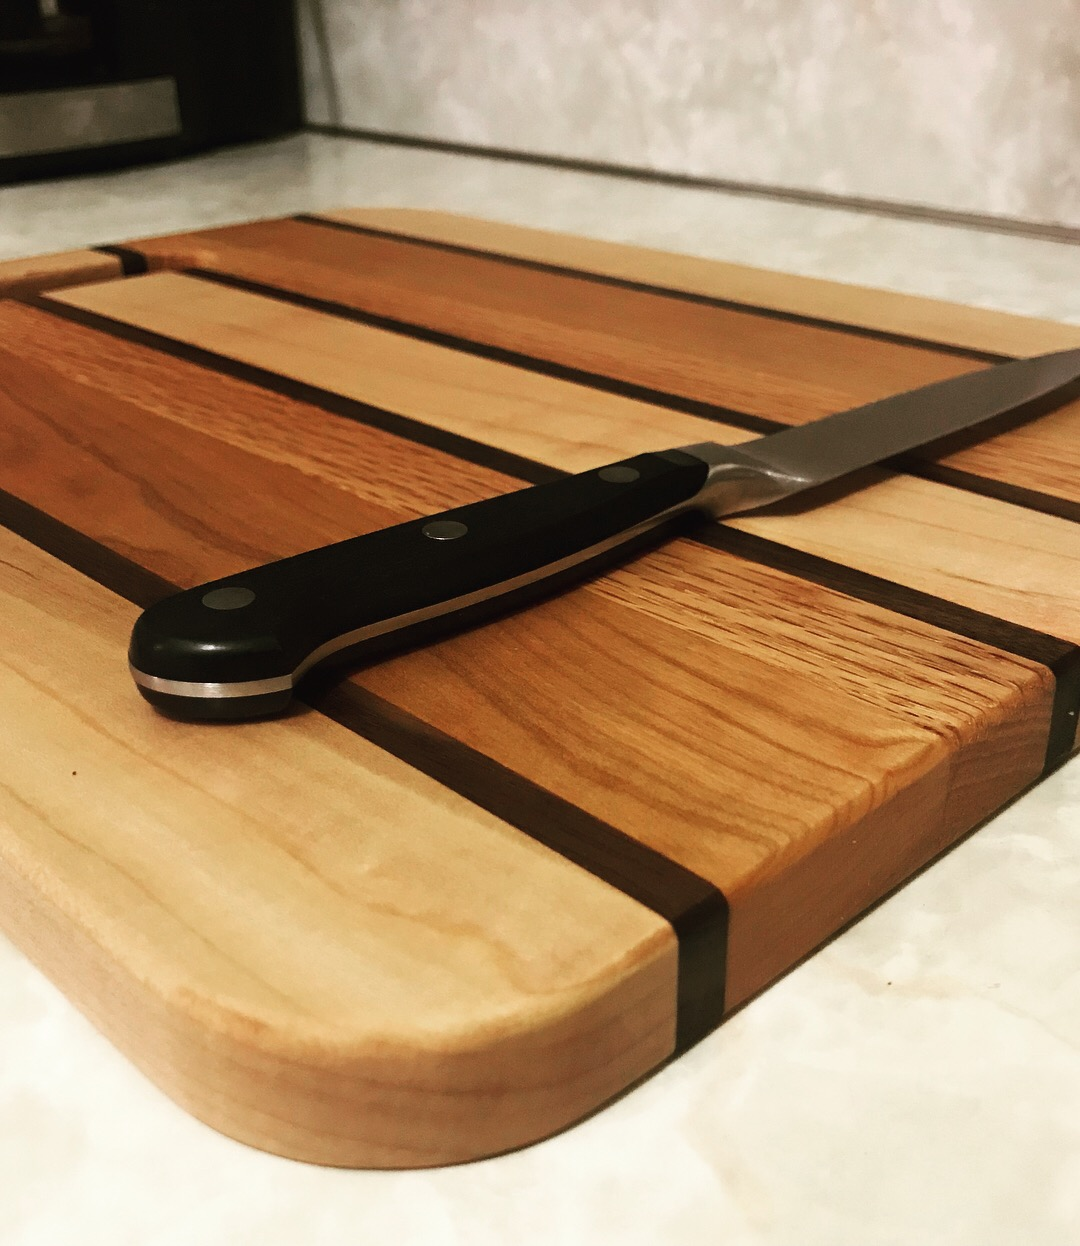 Mixed Hardwood cutting board